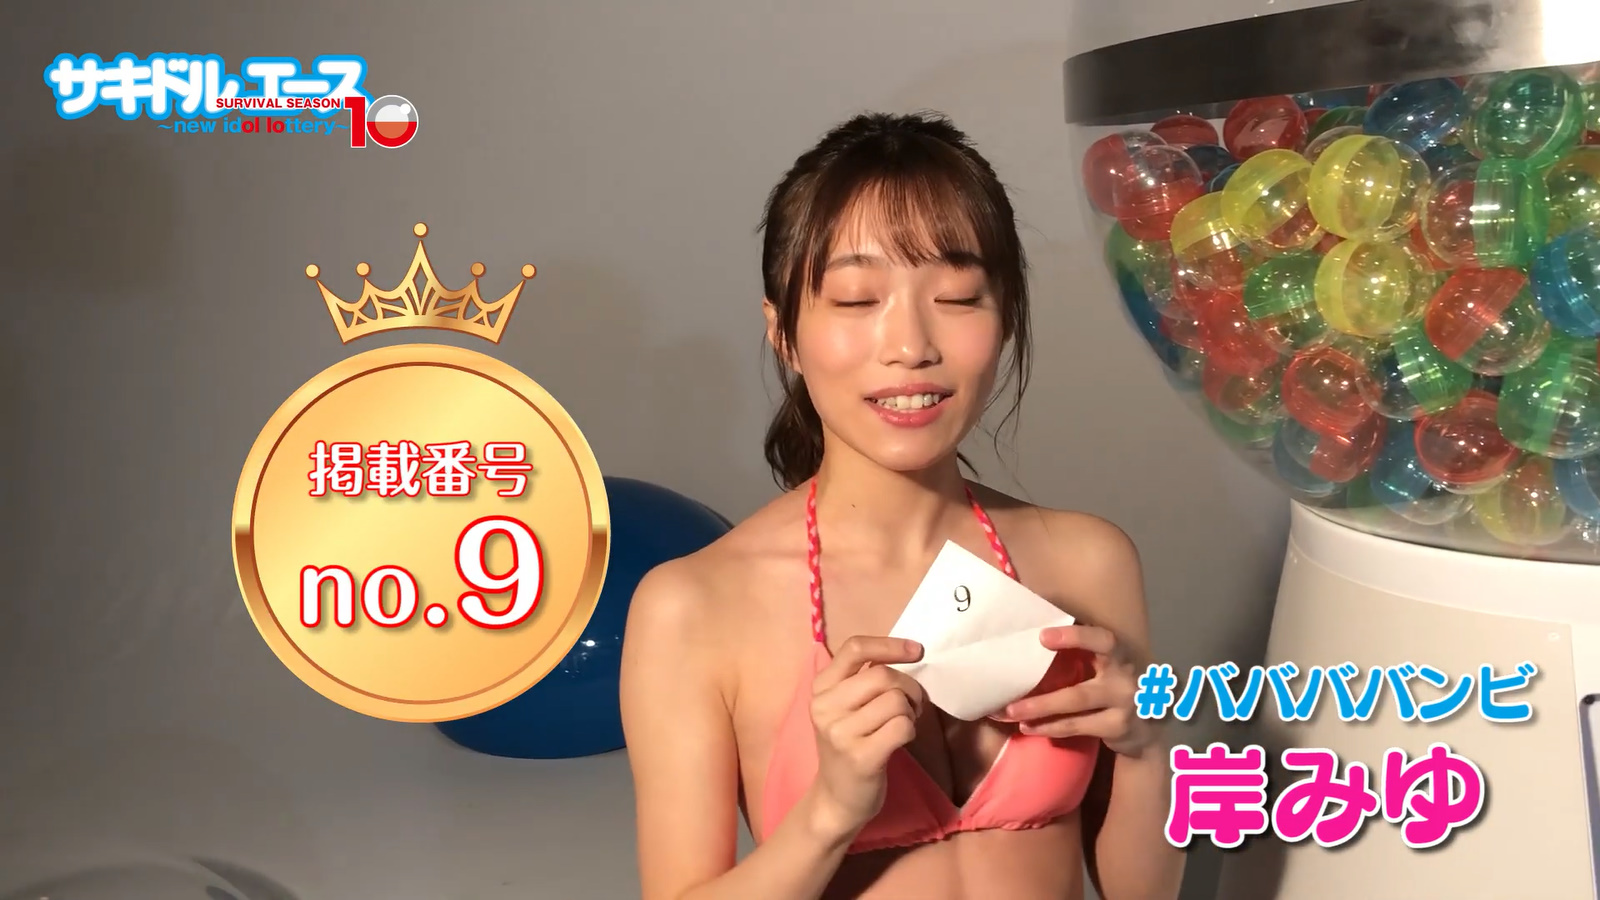 Sakidol Ace 10 Introduction Movie Capture of Swimsuit174